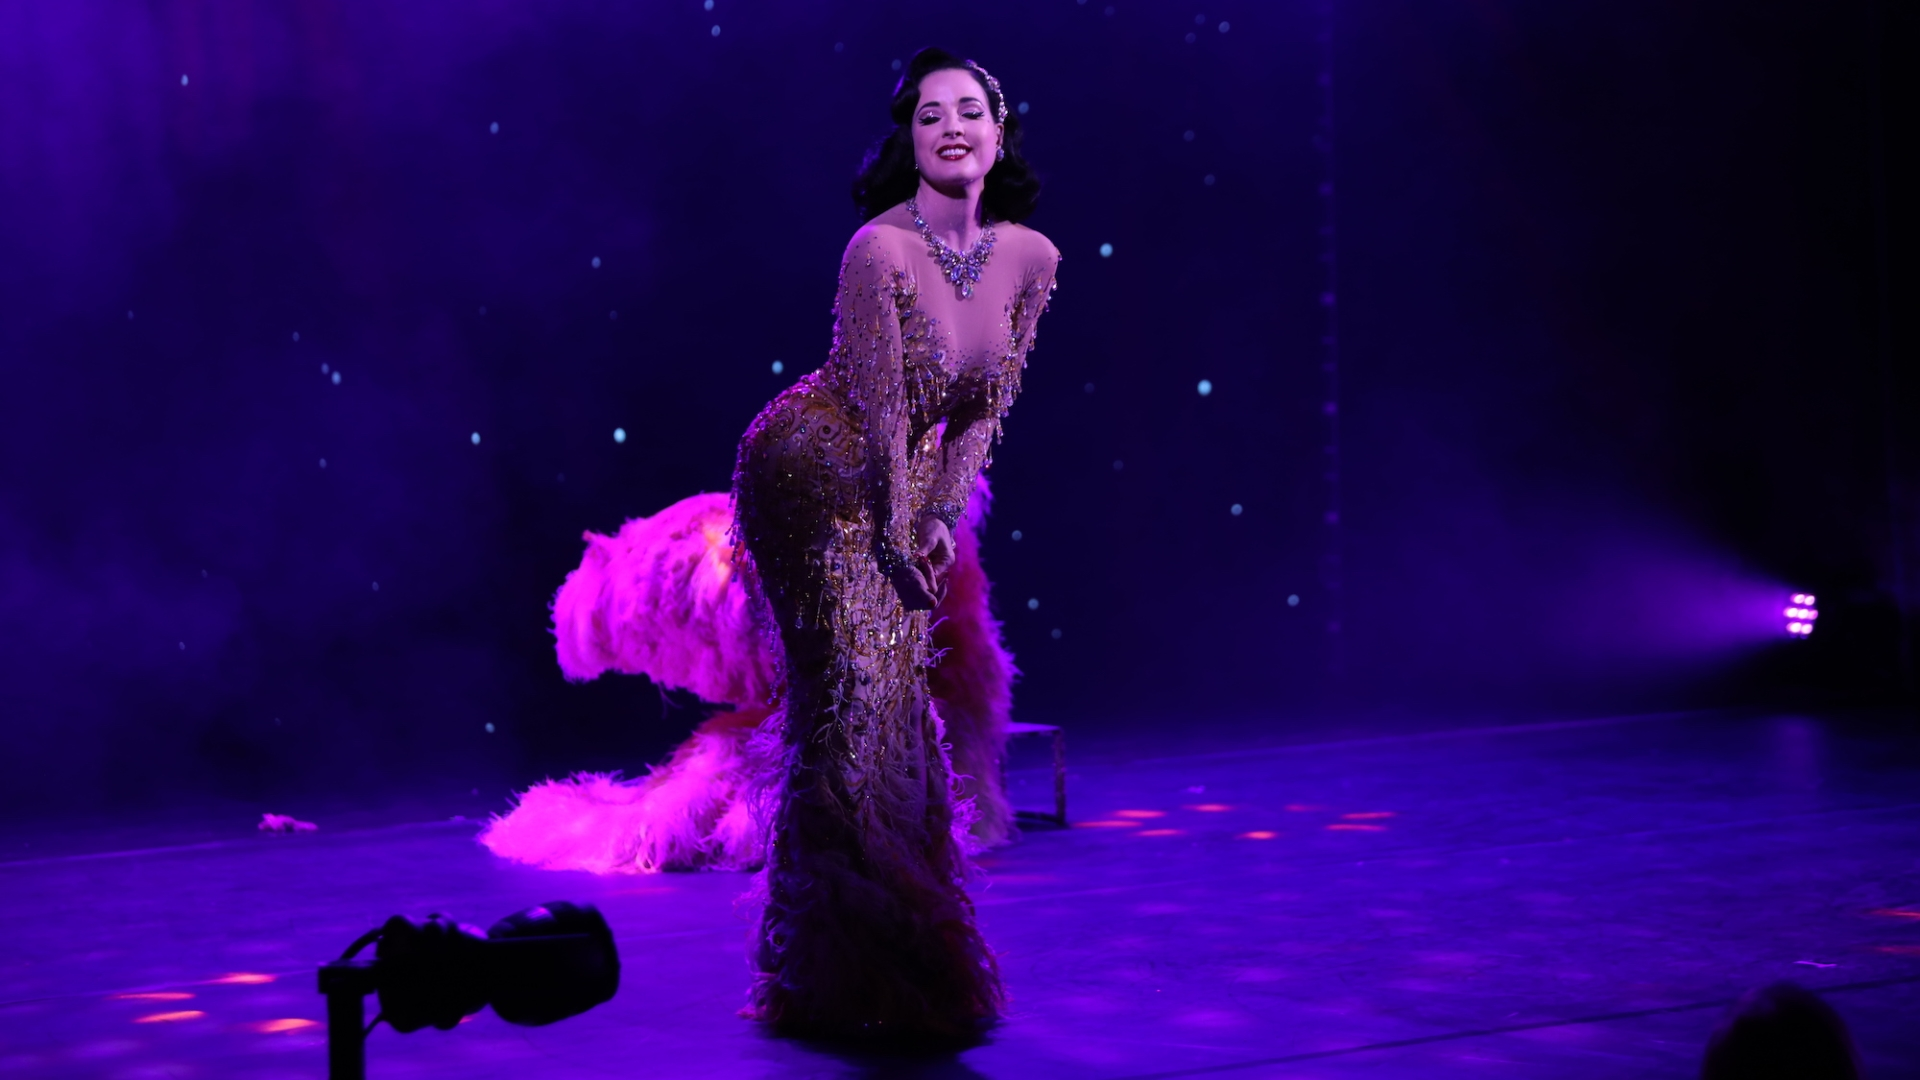 Dita Von Teese at Faena Theater